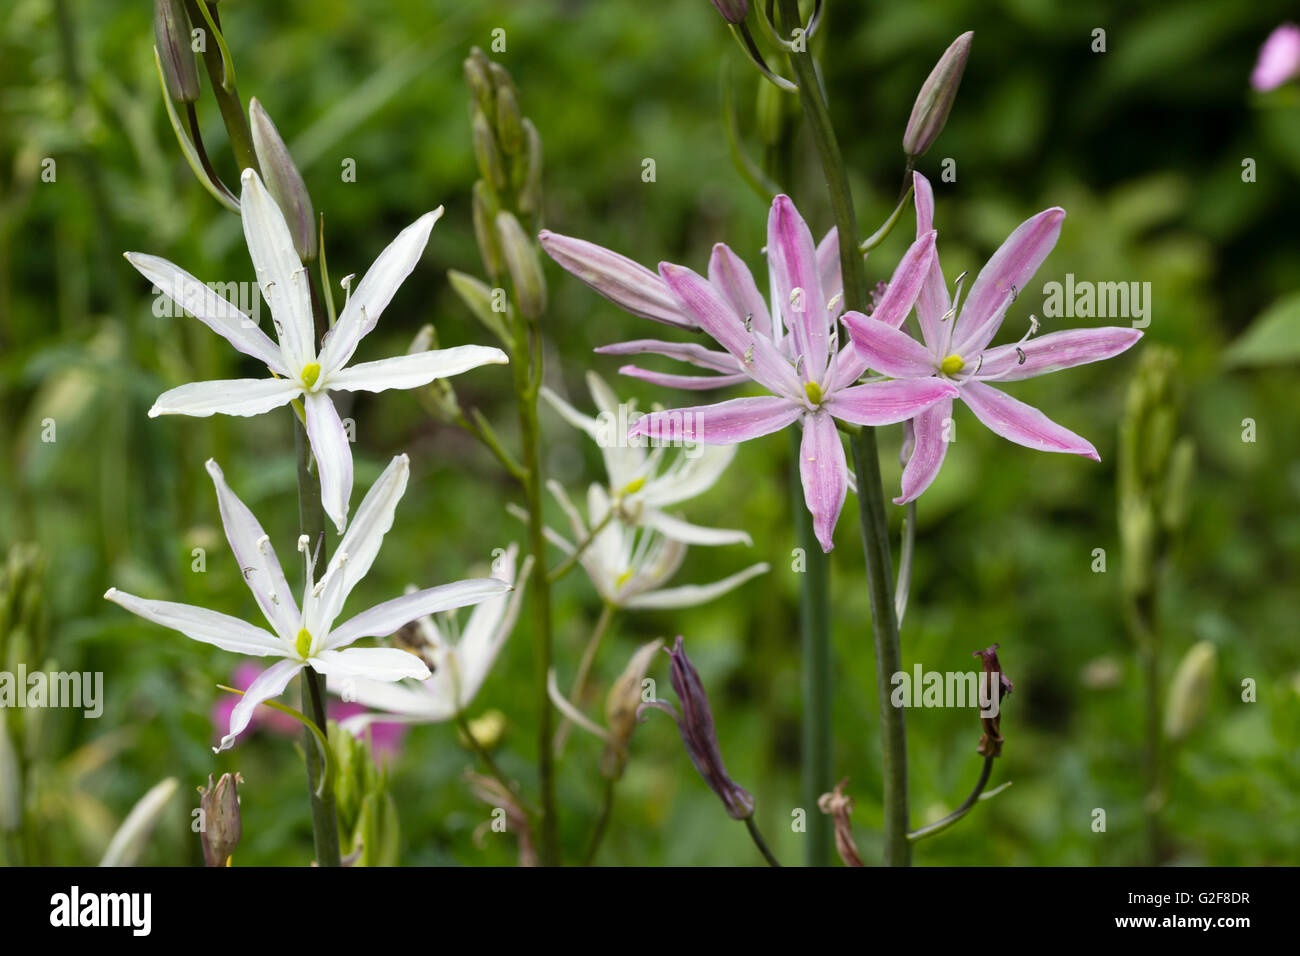 Pink And White Starry Flowers Of The Late Spring Blooming Bulb Stock